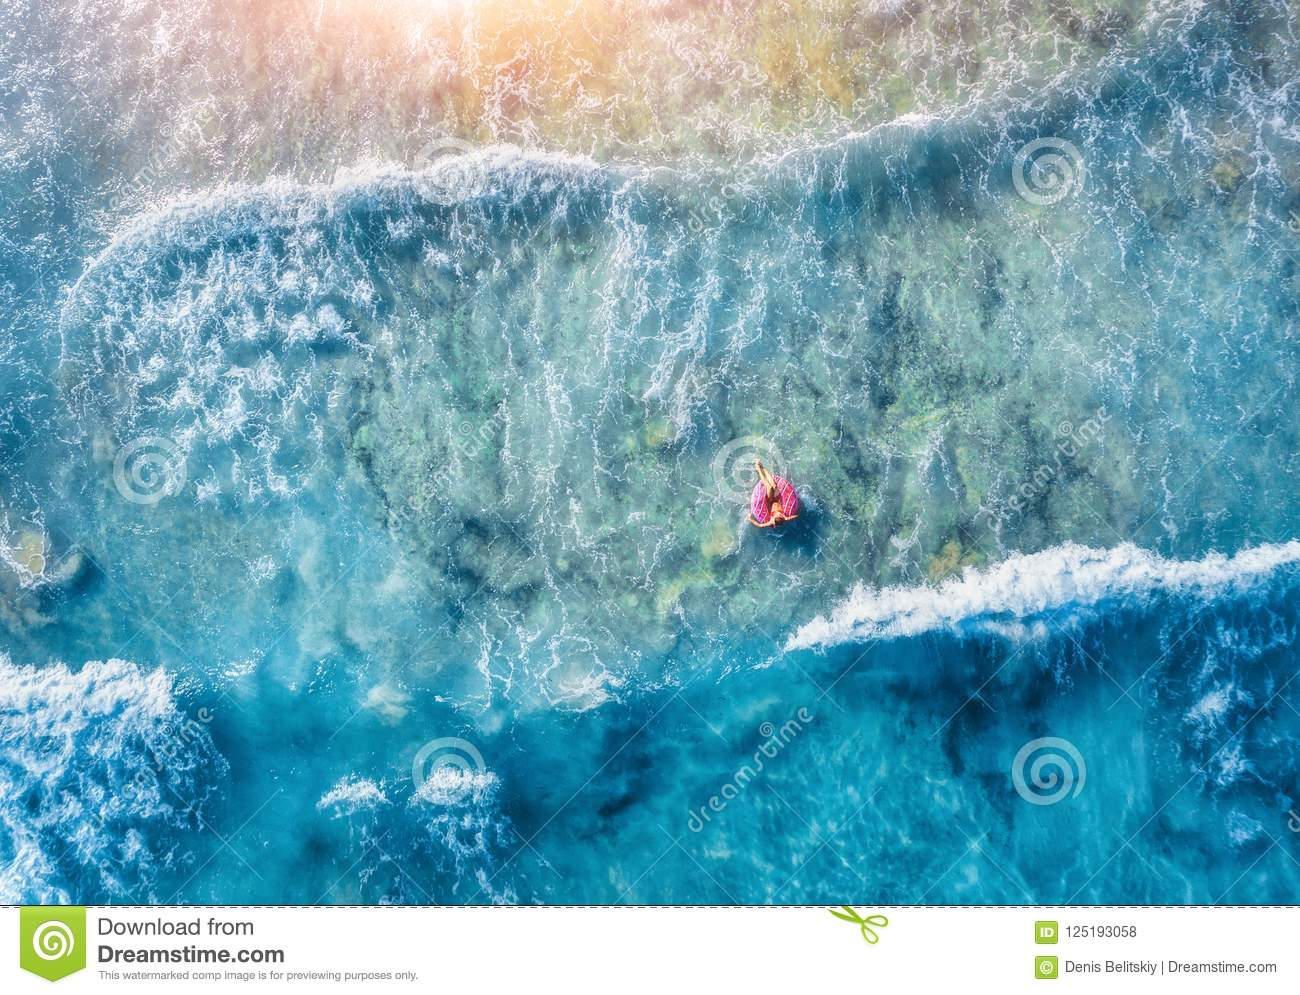 Aerial view of slim young woman swimming on the donut swim ring